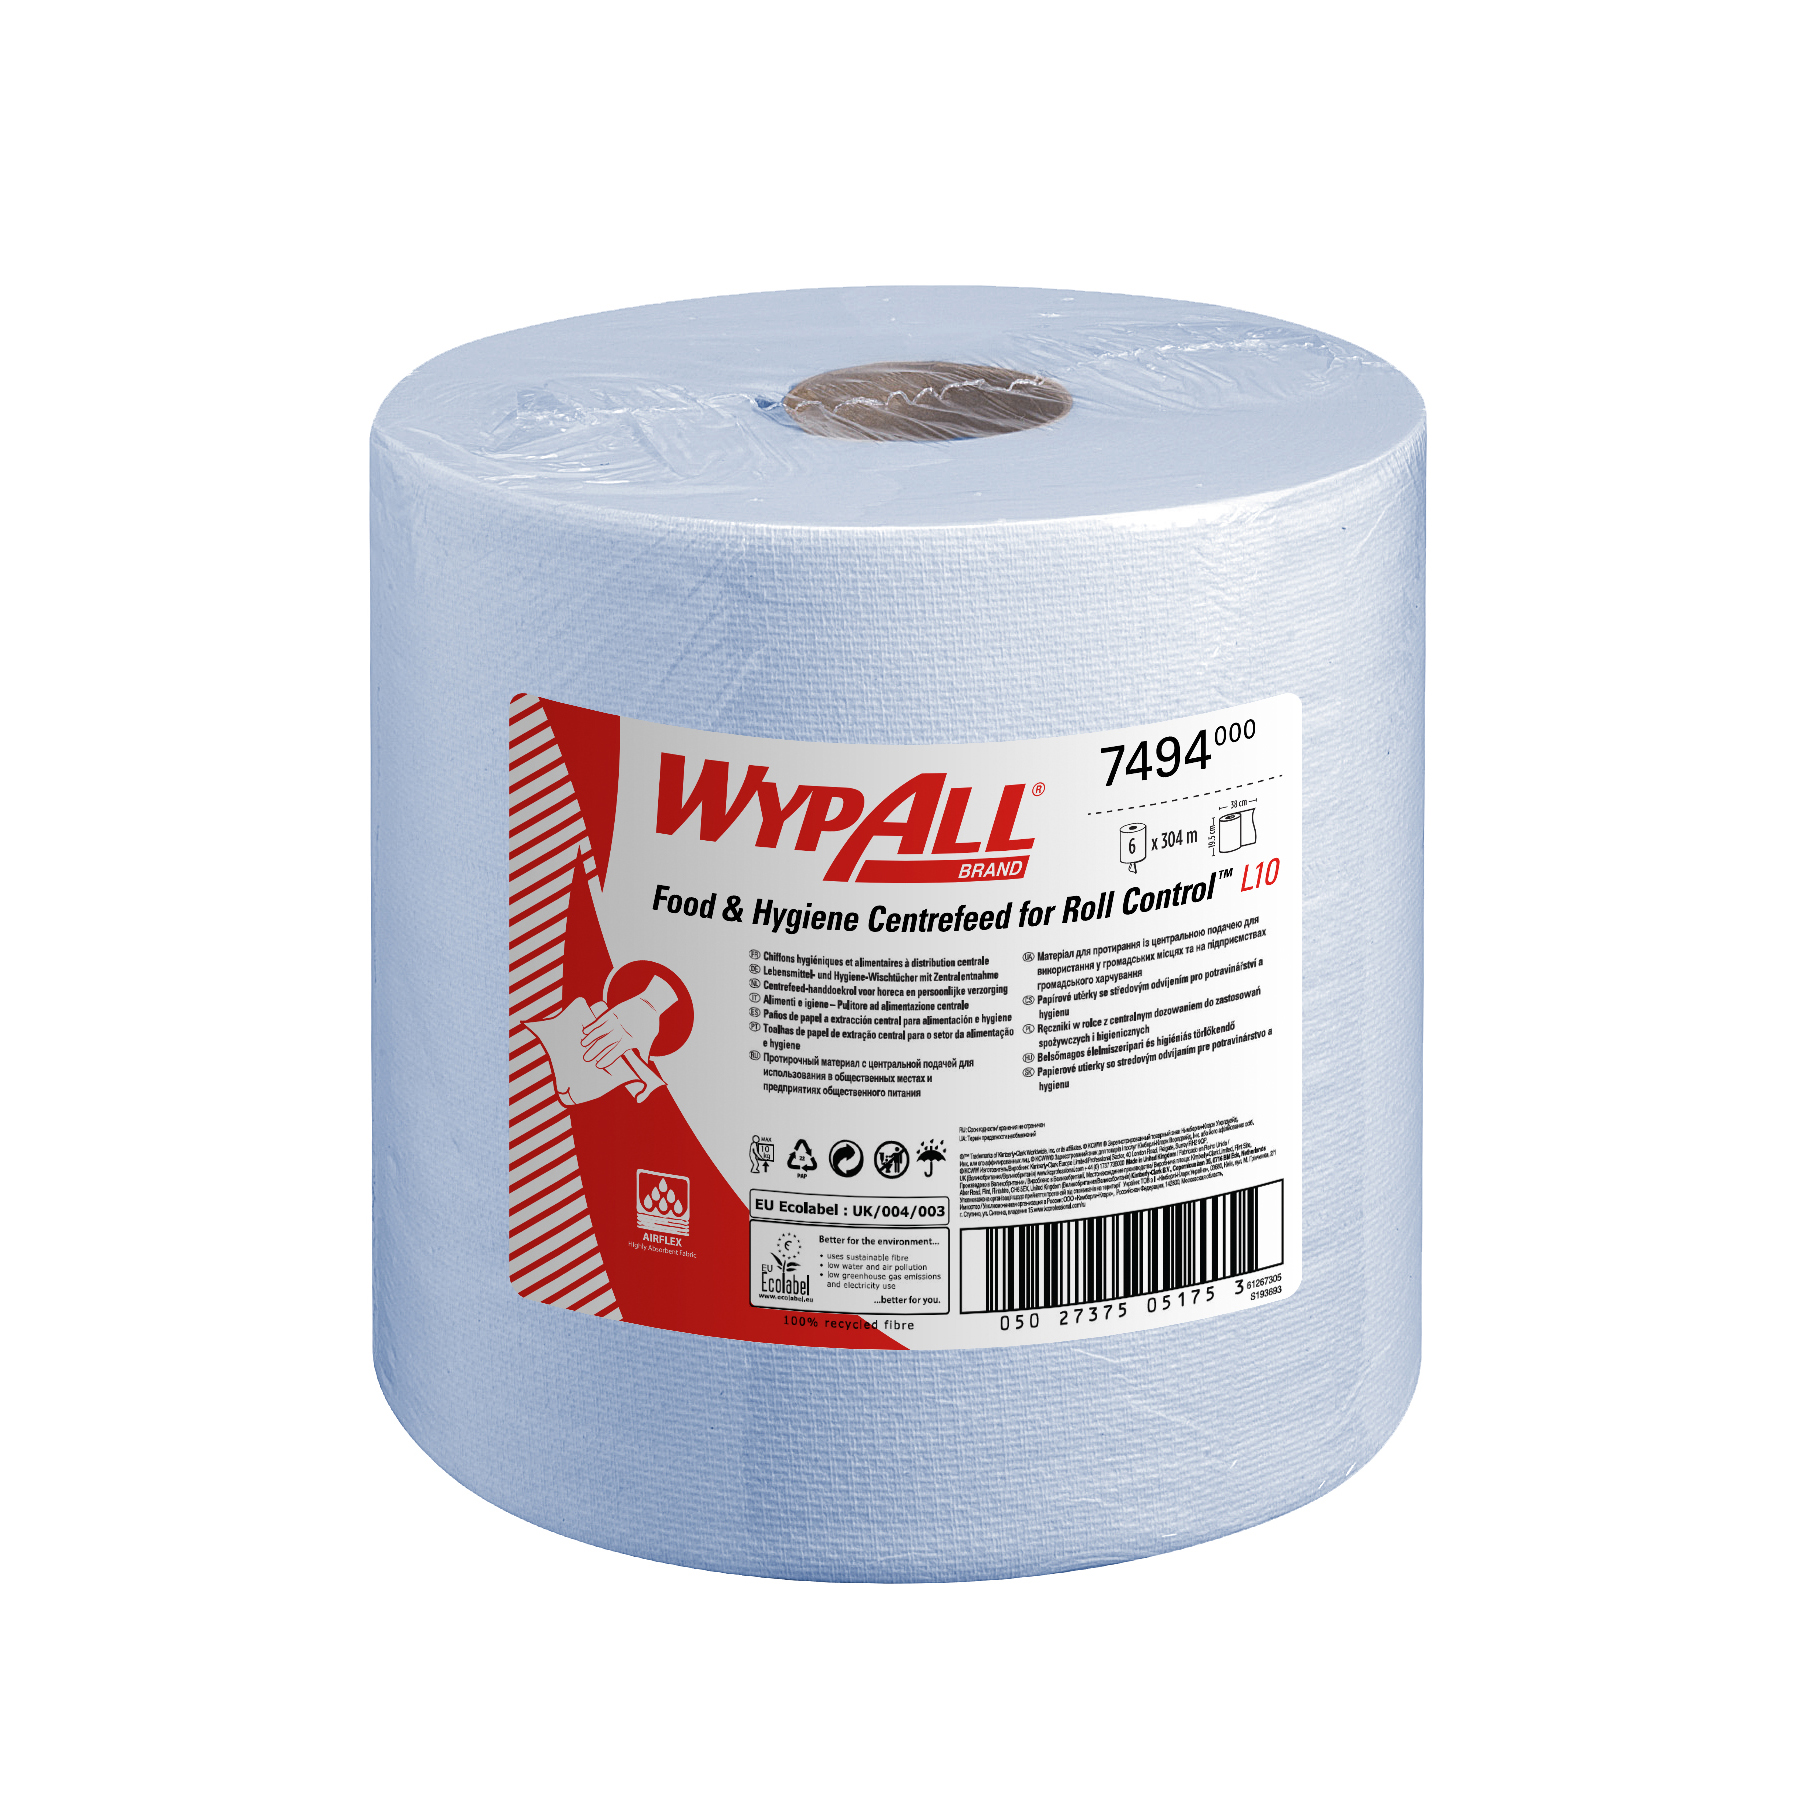 Paper towels WypAll L10 Centrefeed Hand Towel Roll Single Ply 380x185mm 630 Sheets per Roll Blue Ref 7494 Pack 6